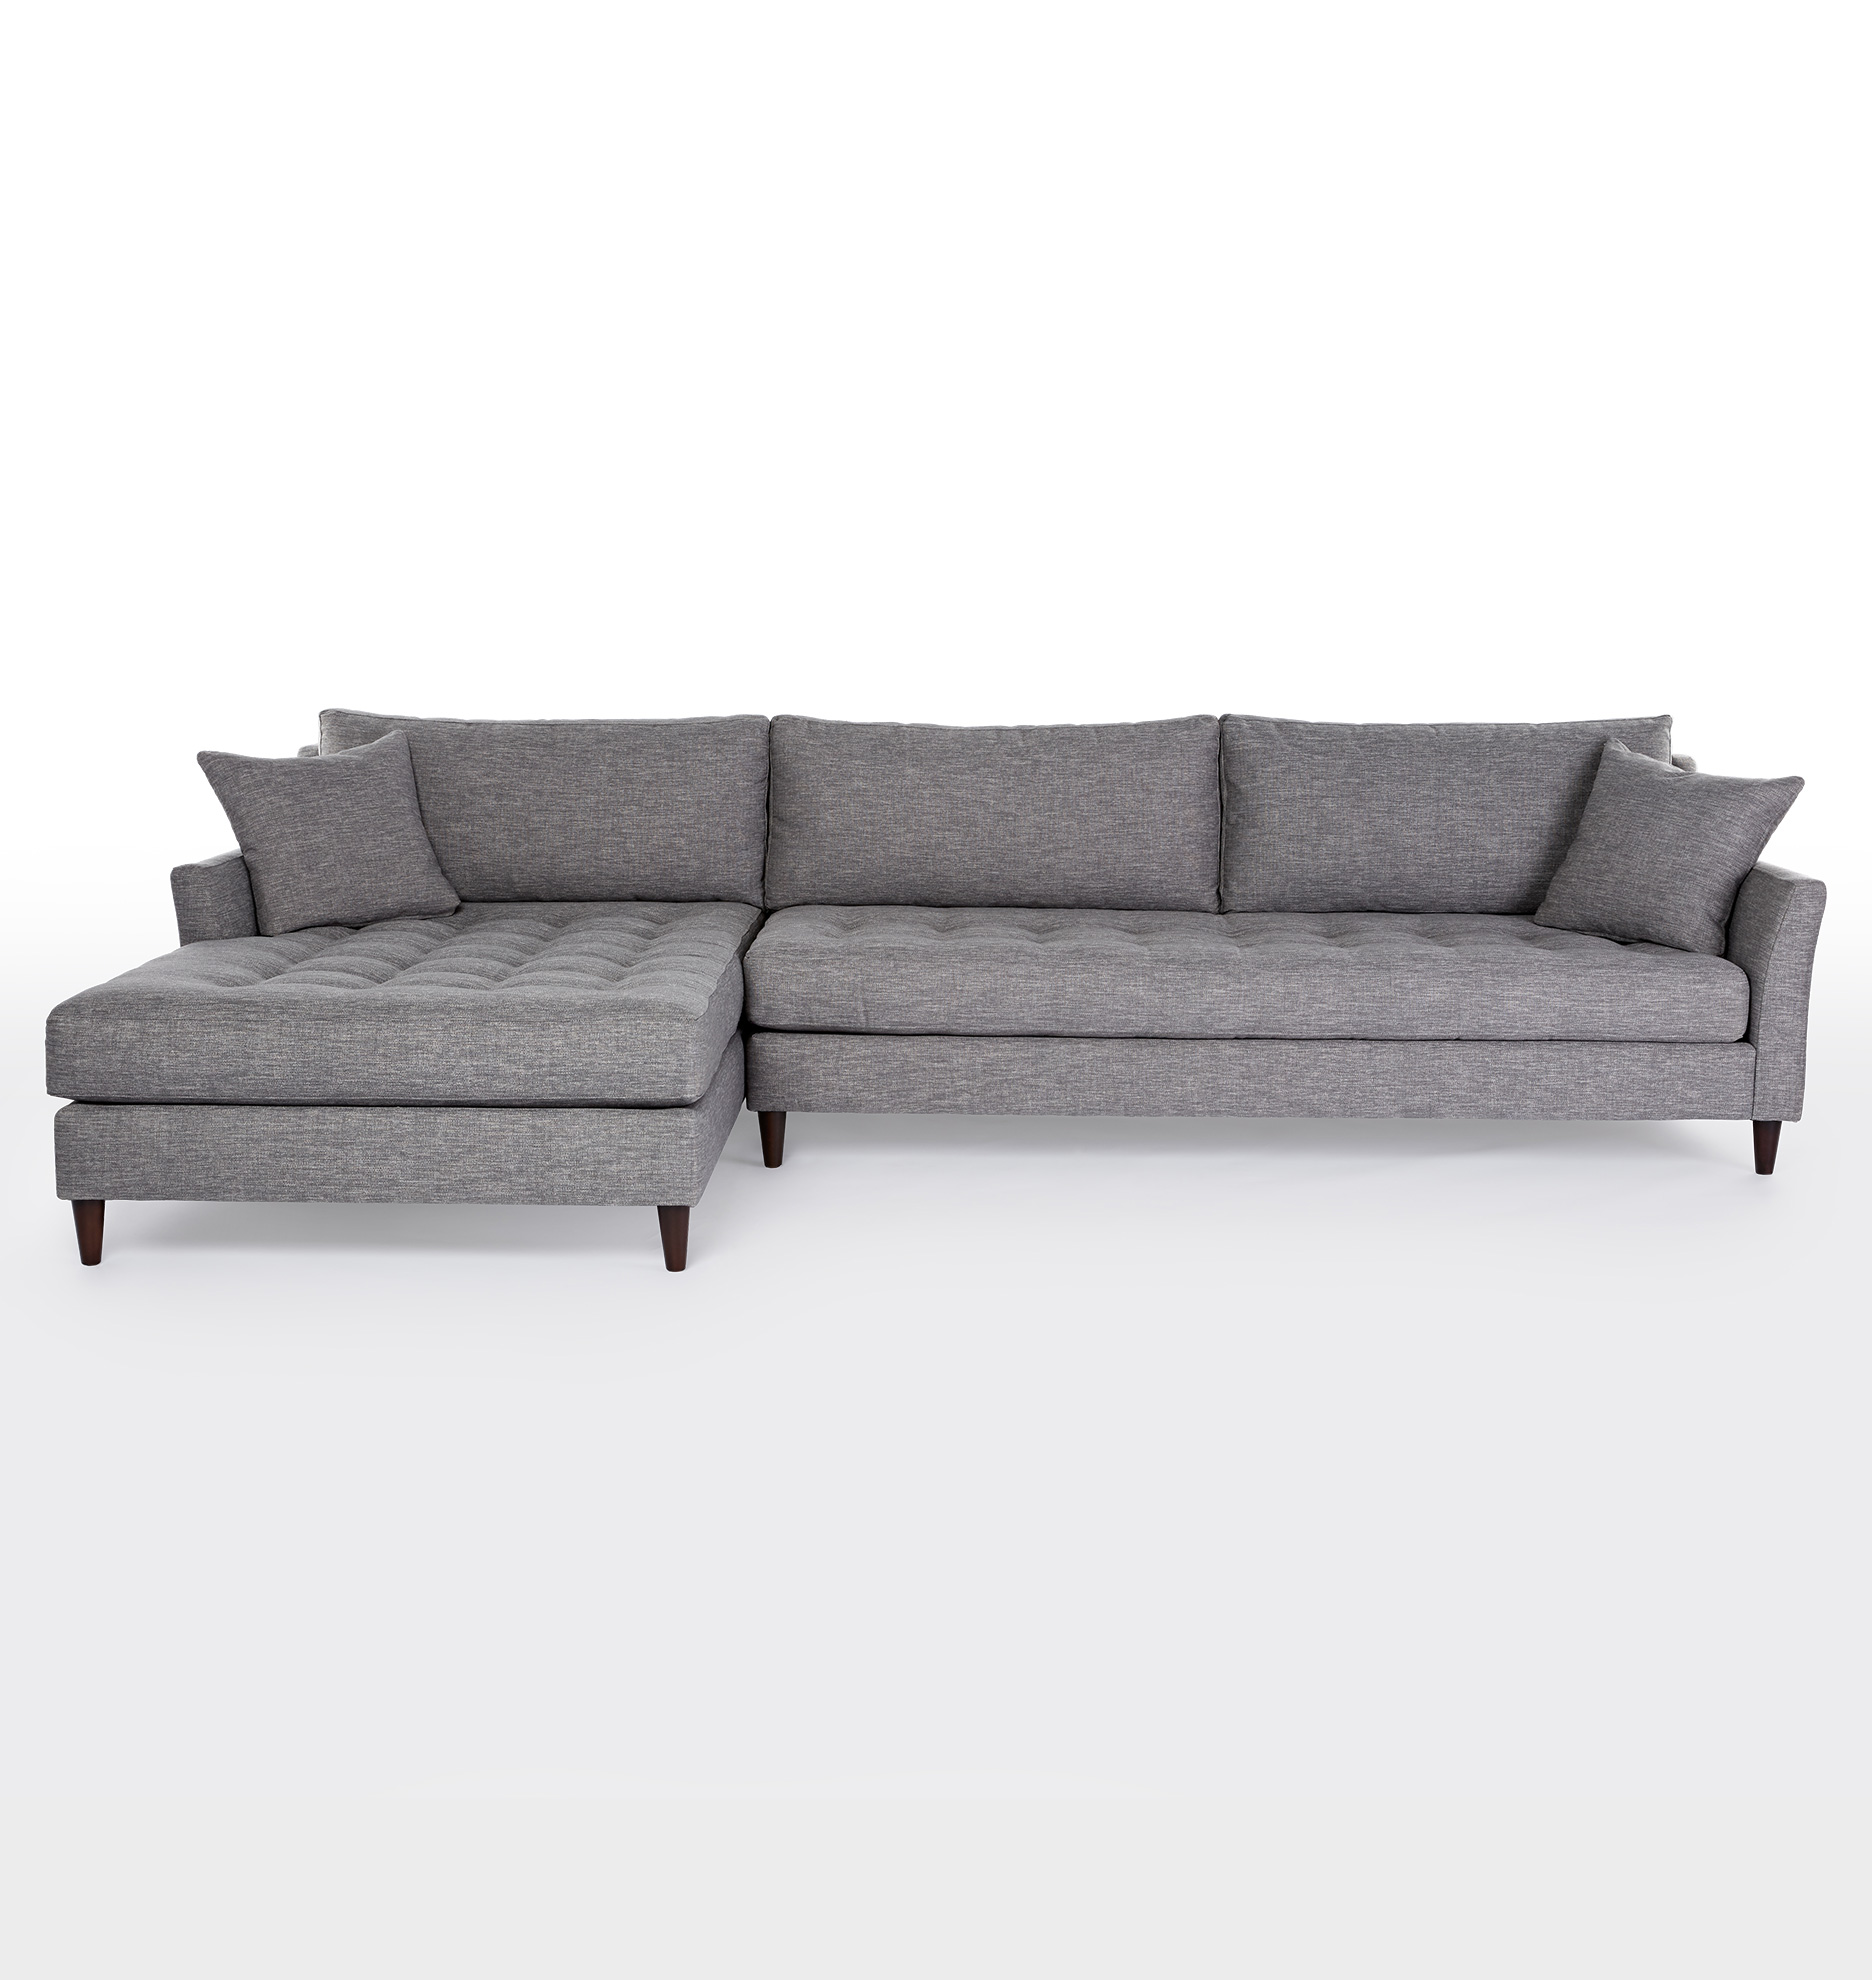 Classic Sofas & Couches